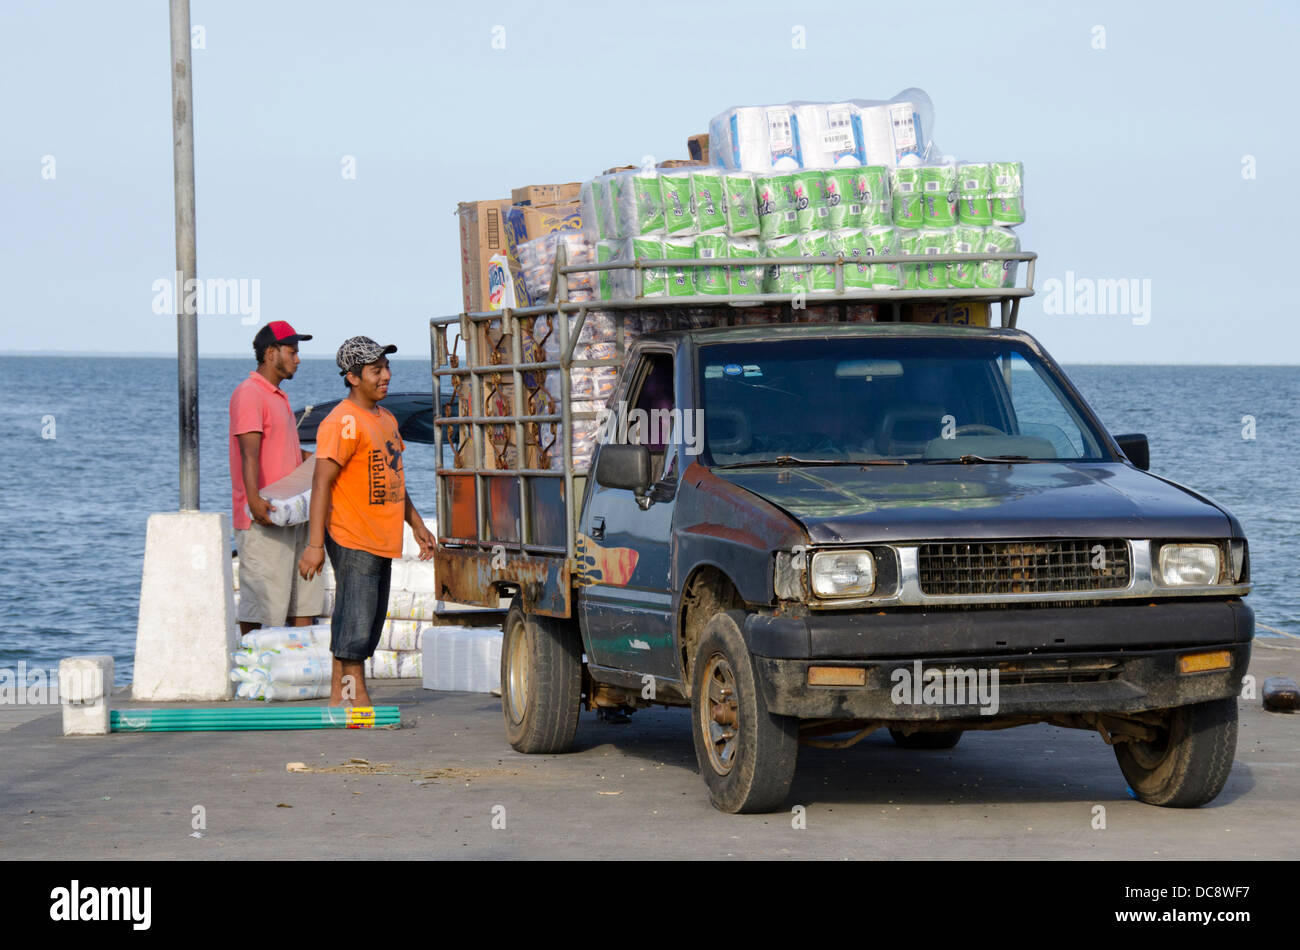 Guatemala, Livingston. Typical port pier with locals loading supplies into truck to take to the highlands. - Stock Image